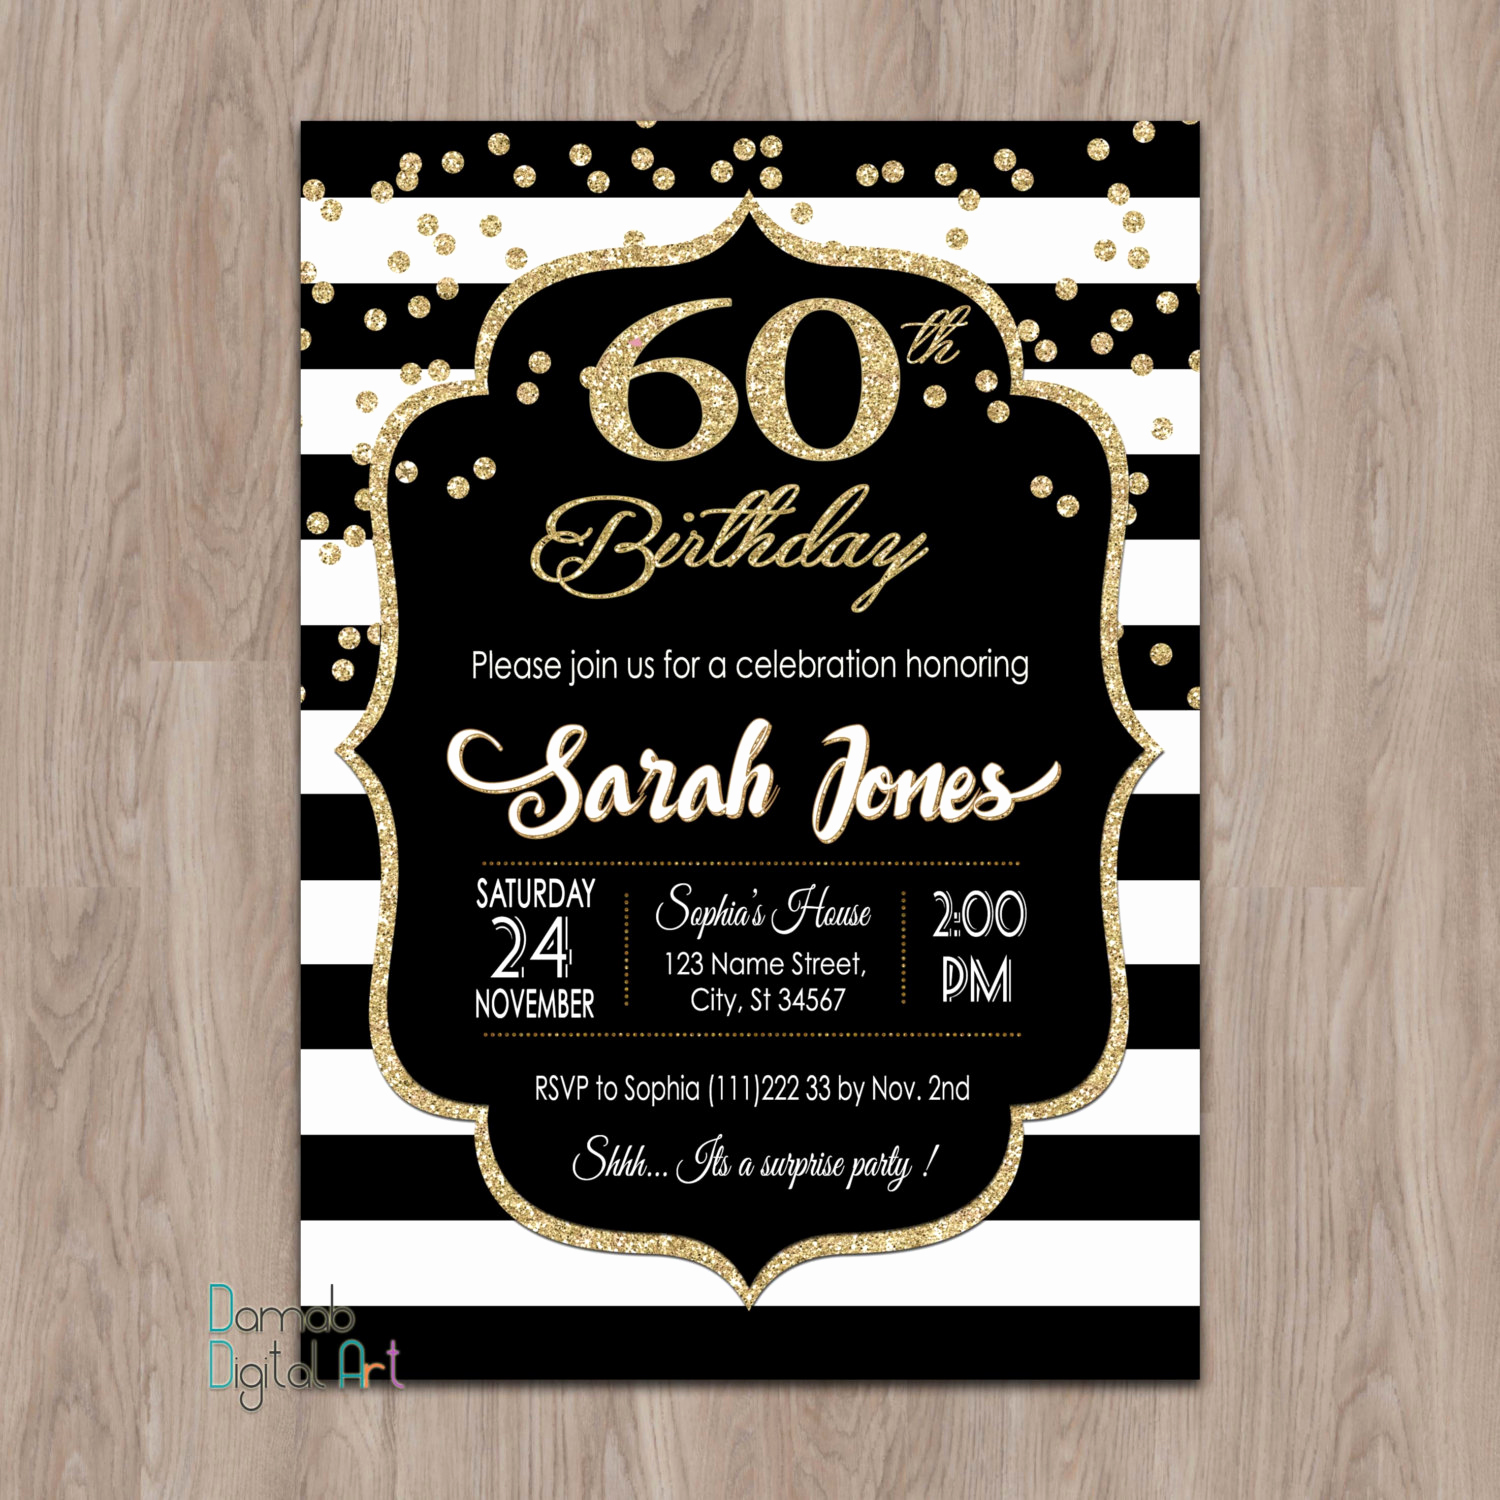 60th Birthday Party Invitation Wording Luxury 60th Birthday Invitations 60th Birthday Invitations for